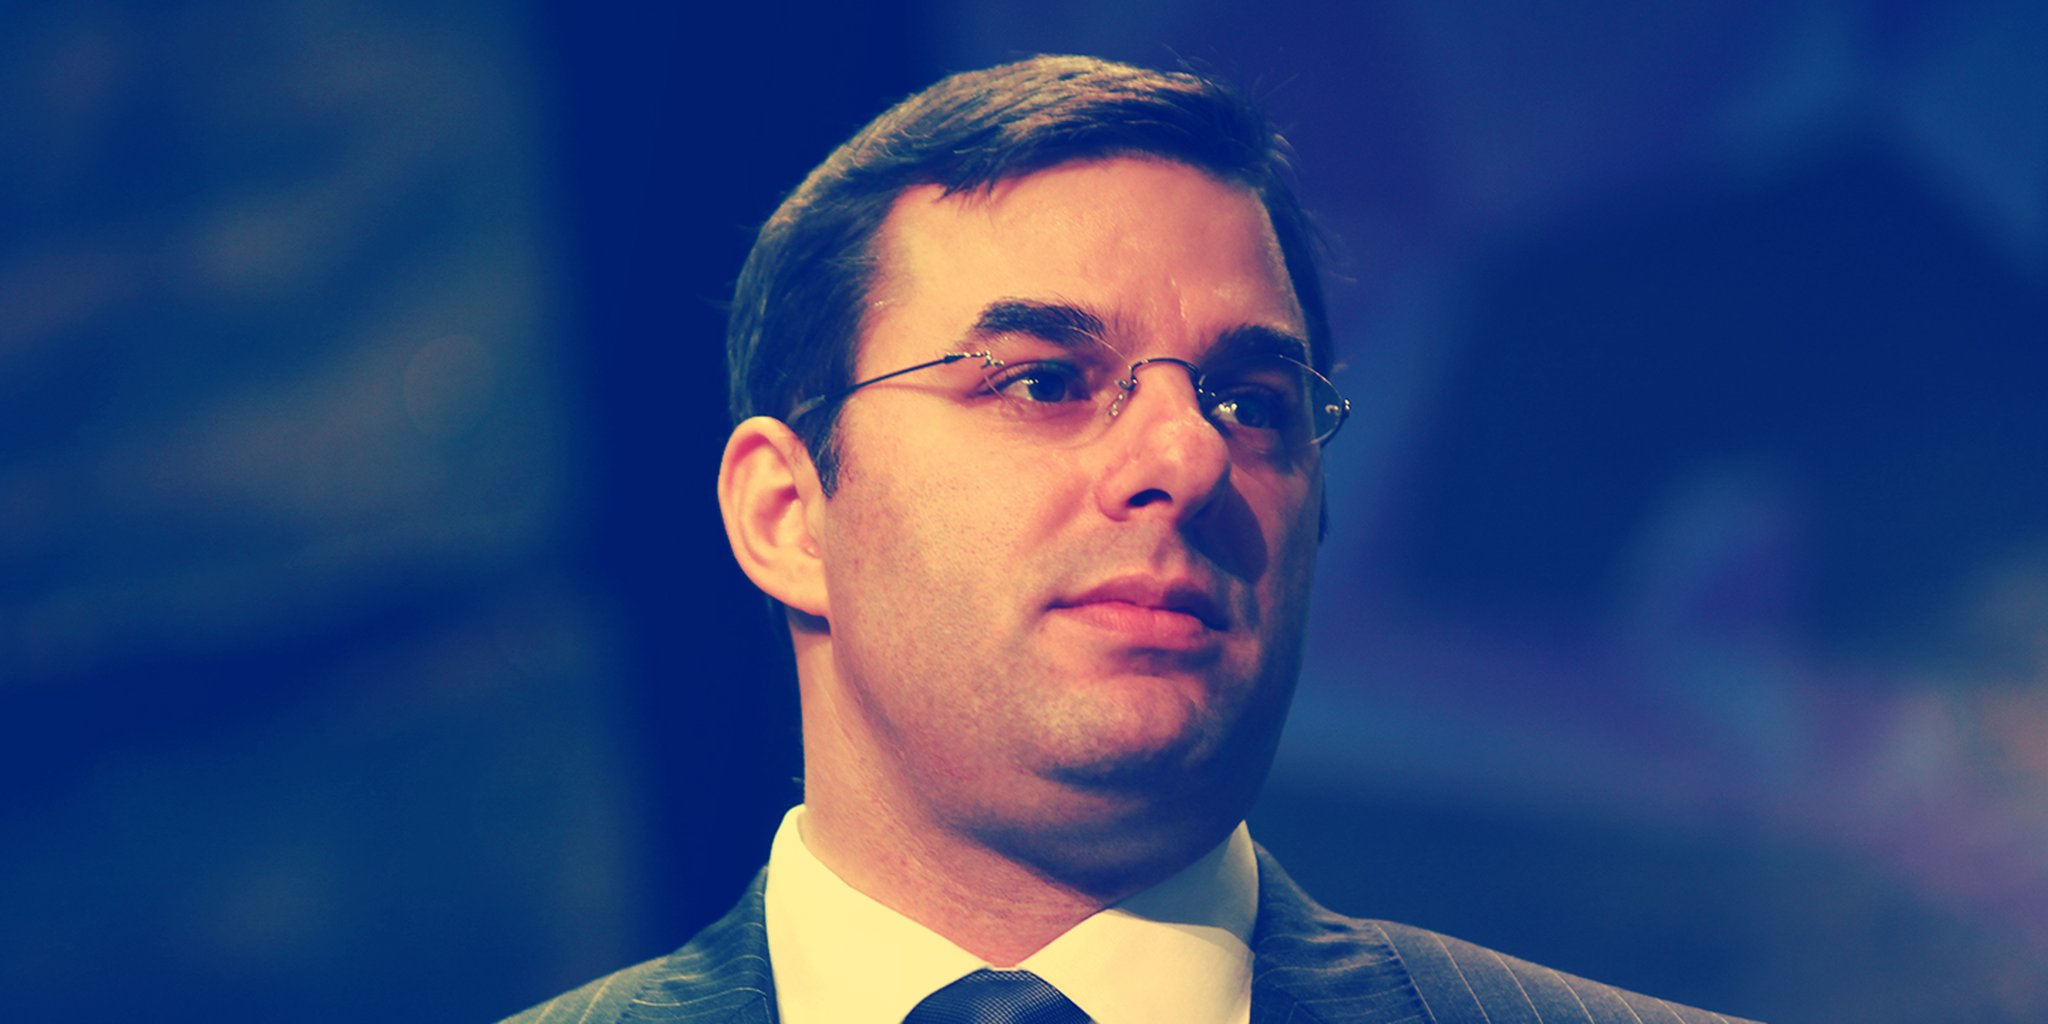 photo of justin amash